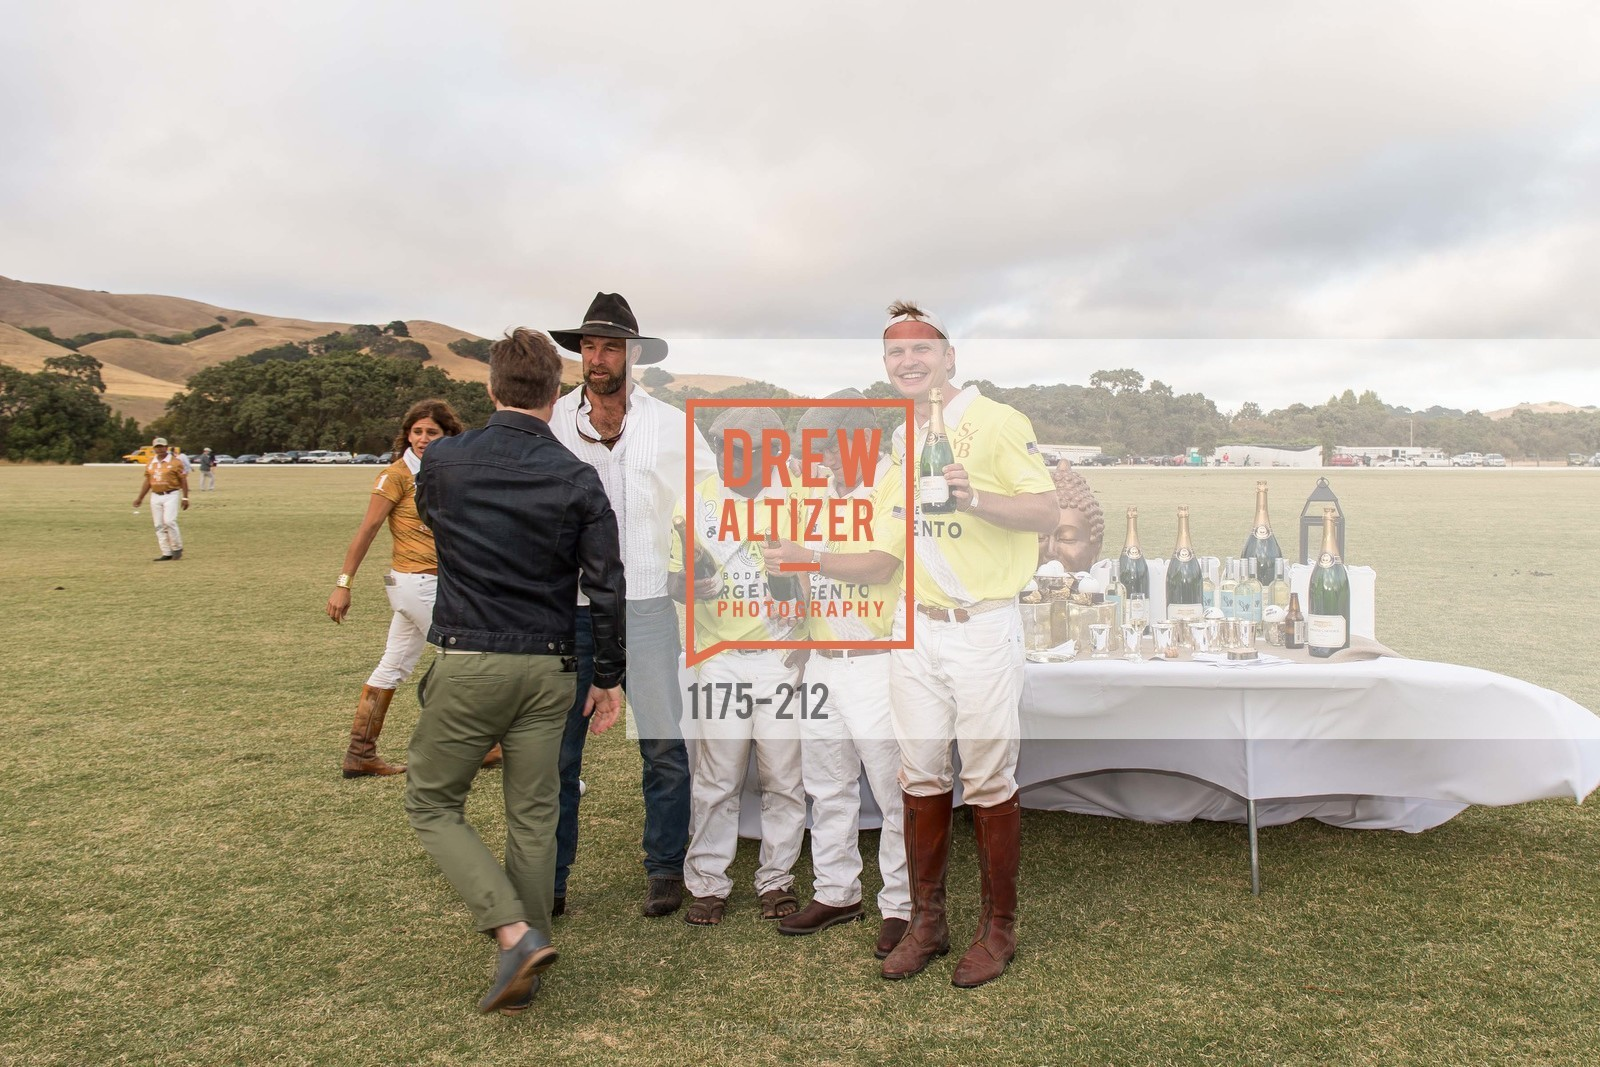 Hearst Welborn, Akin Sotomi, Rob Darakhshan, Ross Caton, Stick & Ball Oyster Cup Polo Tournament, Cerro Pampa Polo Club, July 25th, 2015,Drew Altizer, Drew Altizer Photography, full-service event agency, private events, San Francisco photographer, photographer California